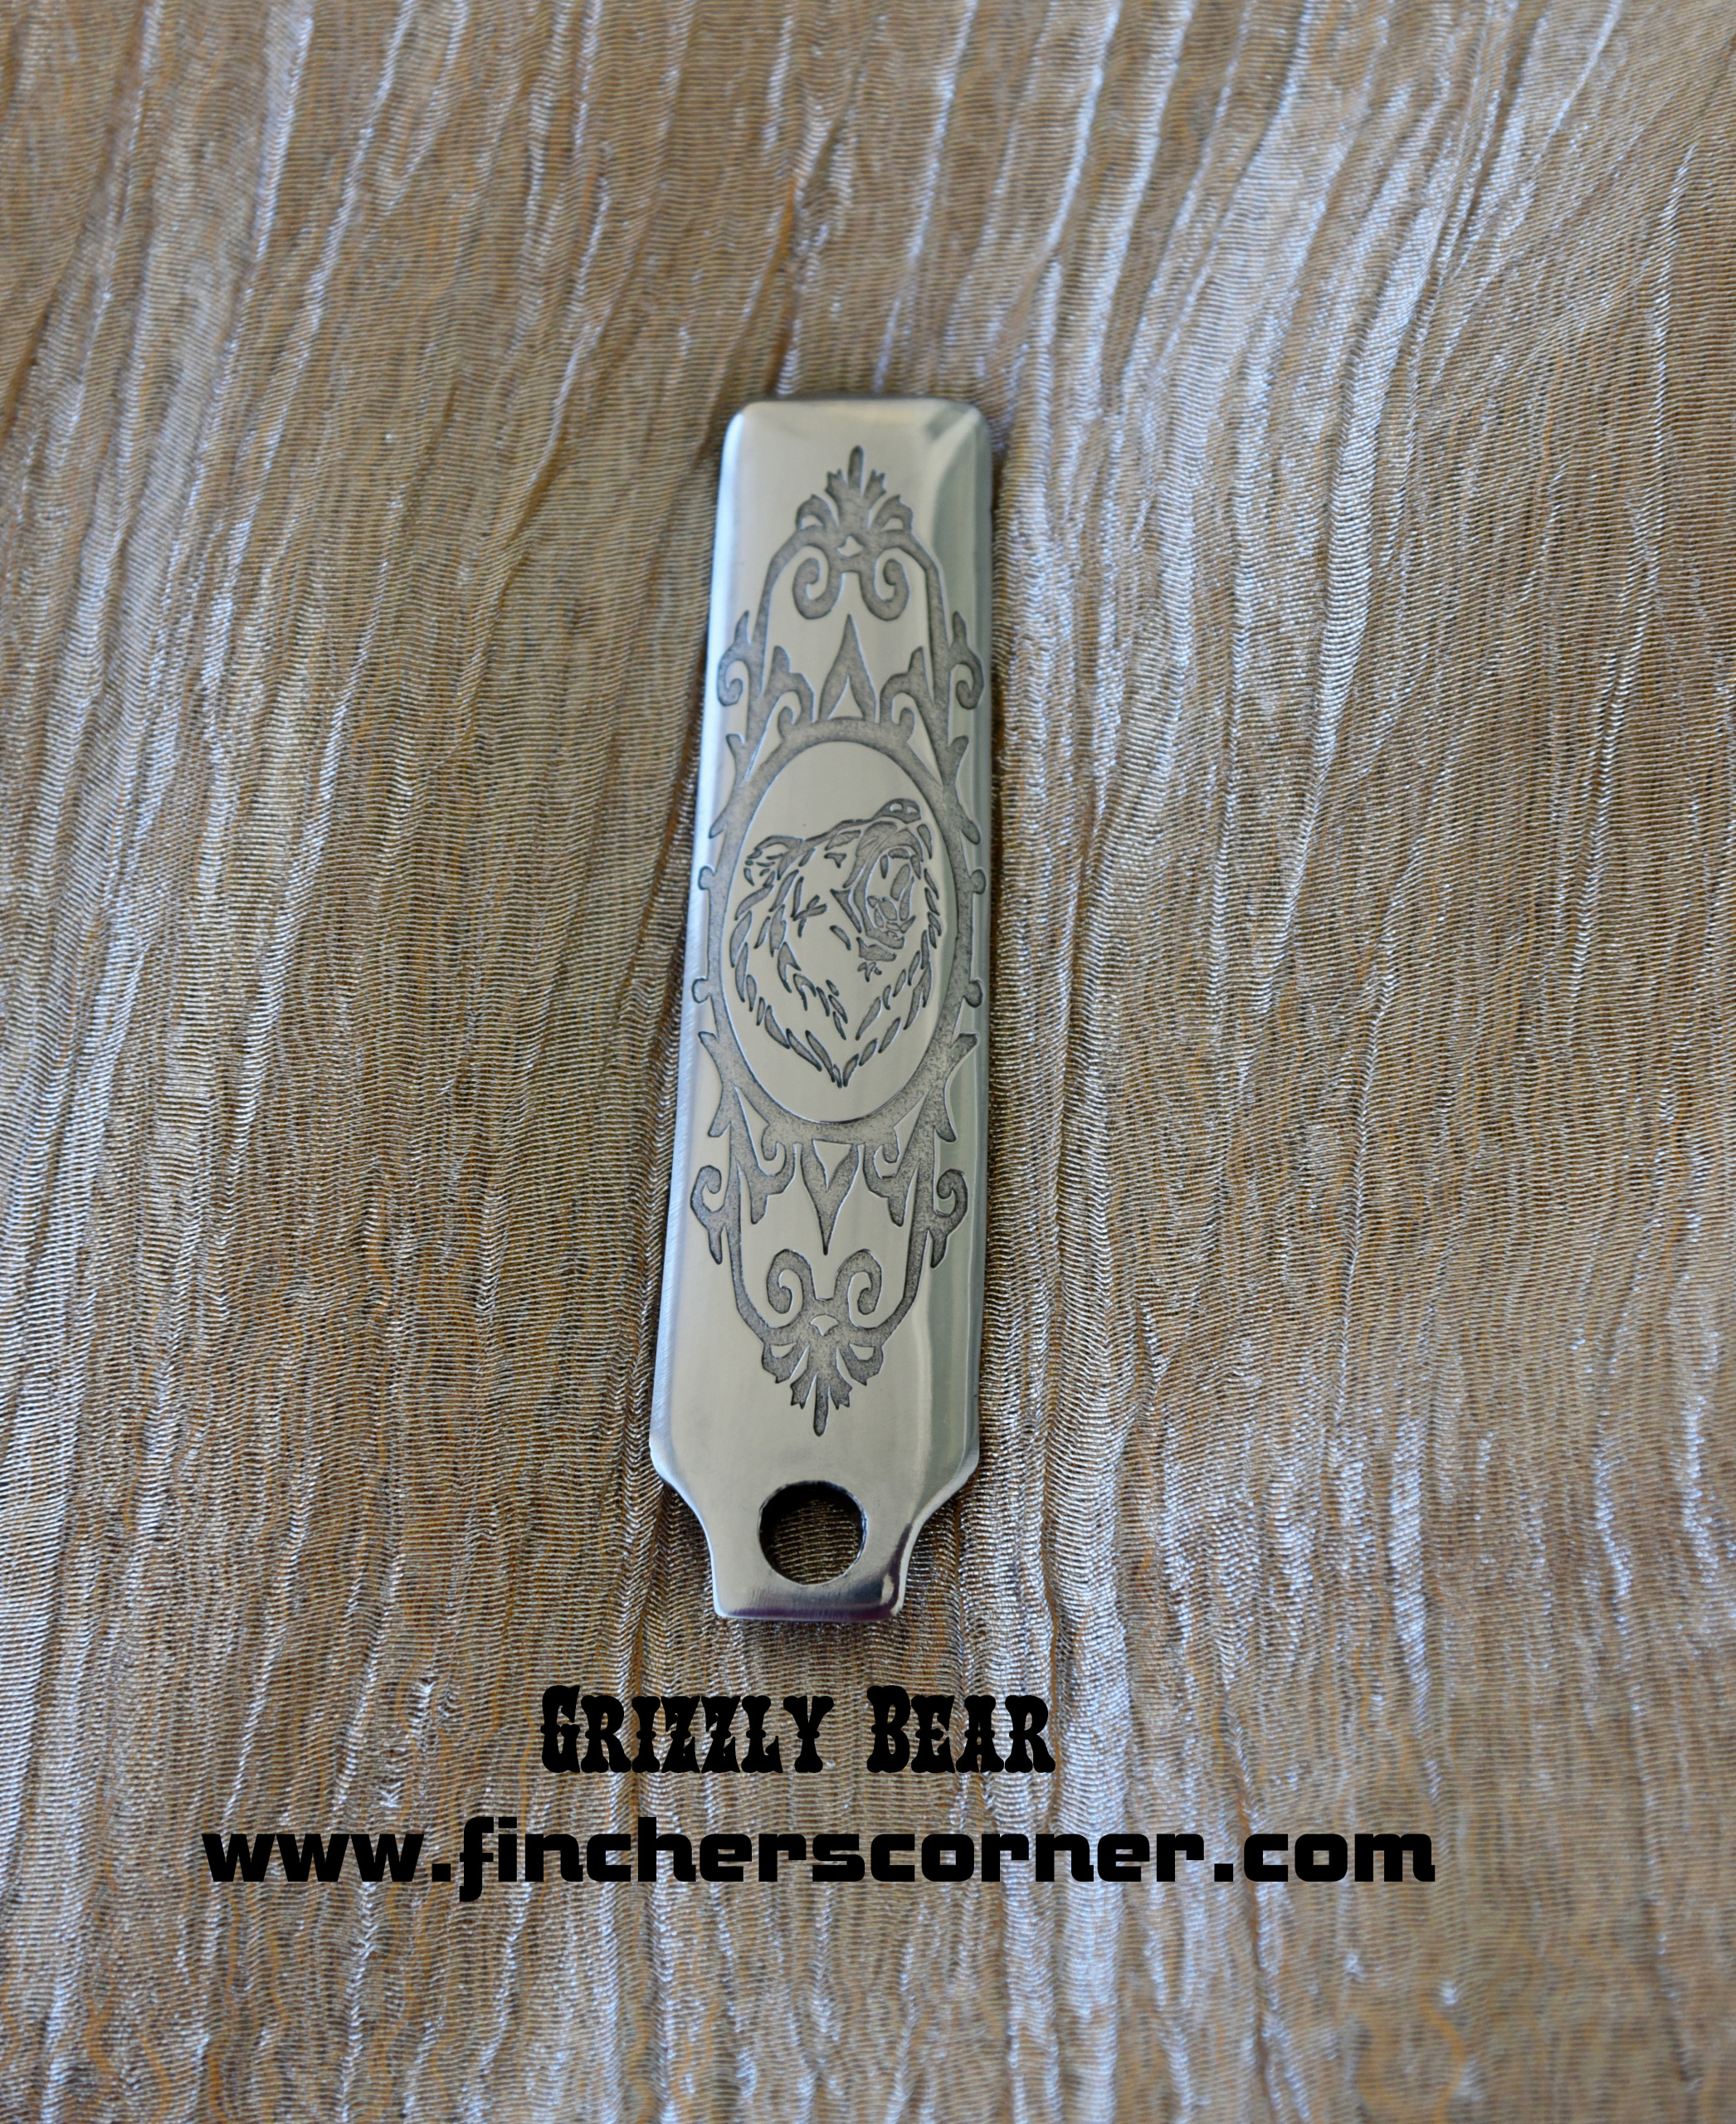 Polish & Background Relief Engraved Service on Your Steel or